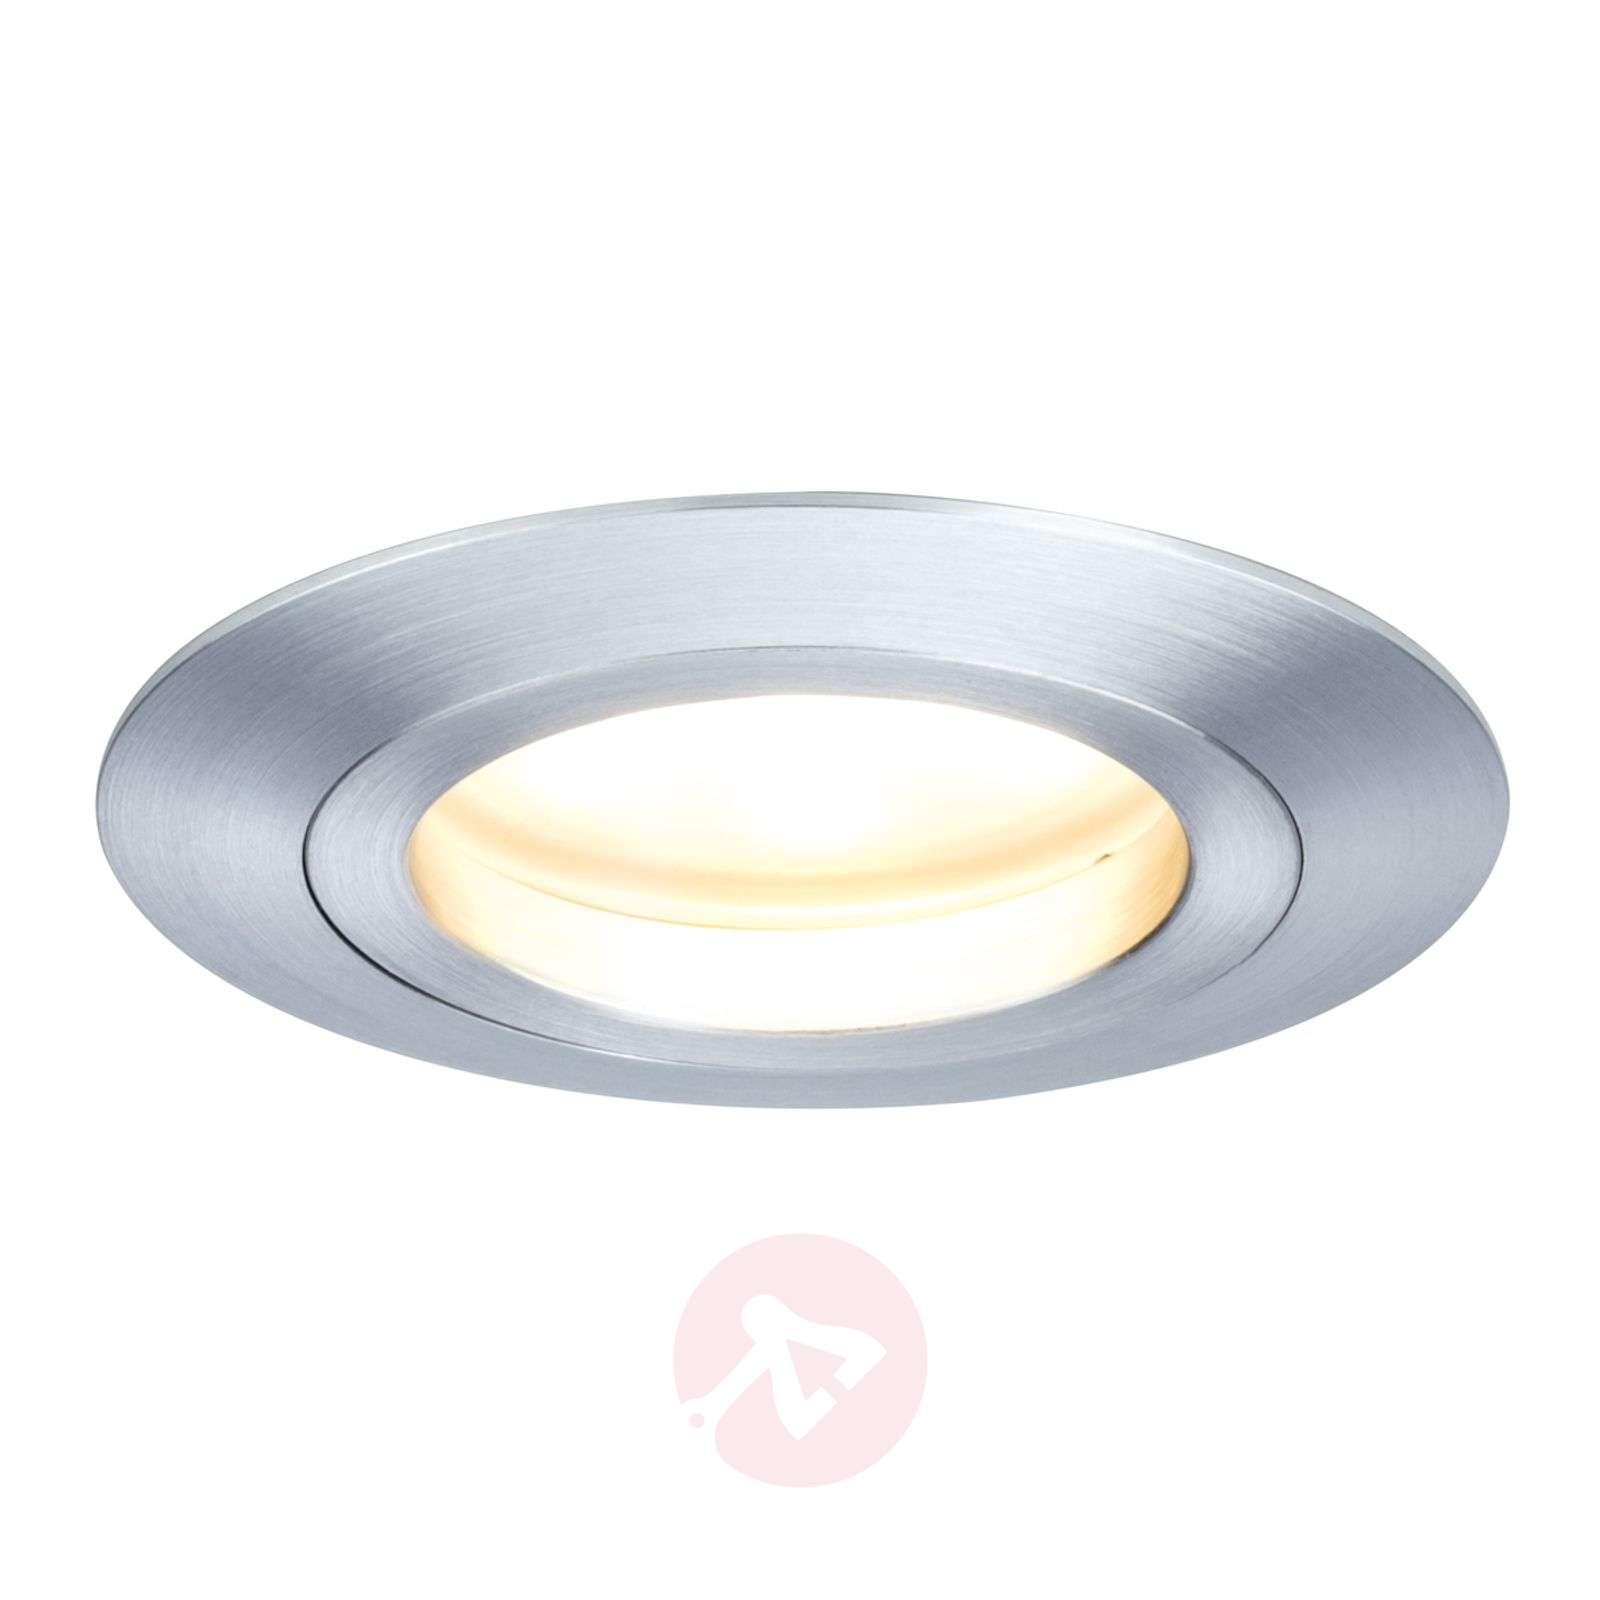 Led recessed light coin round ip44 lights ie